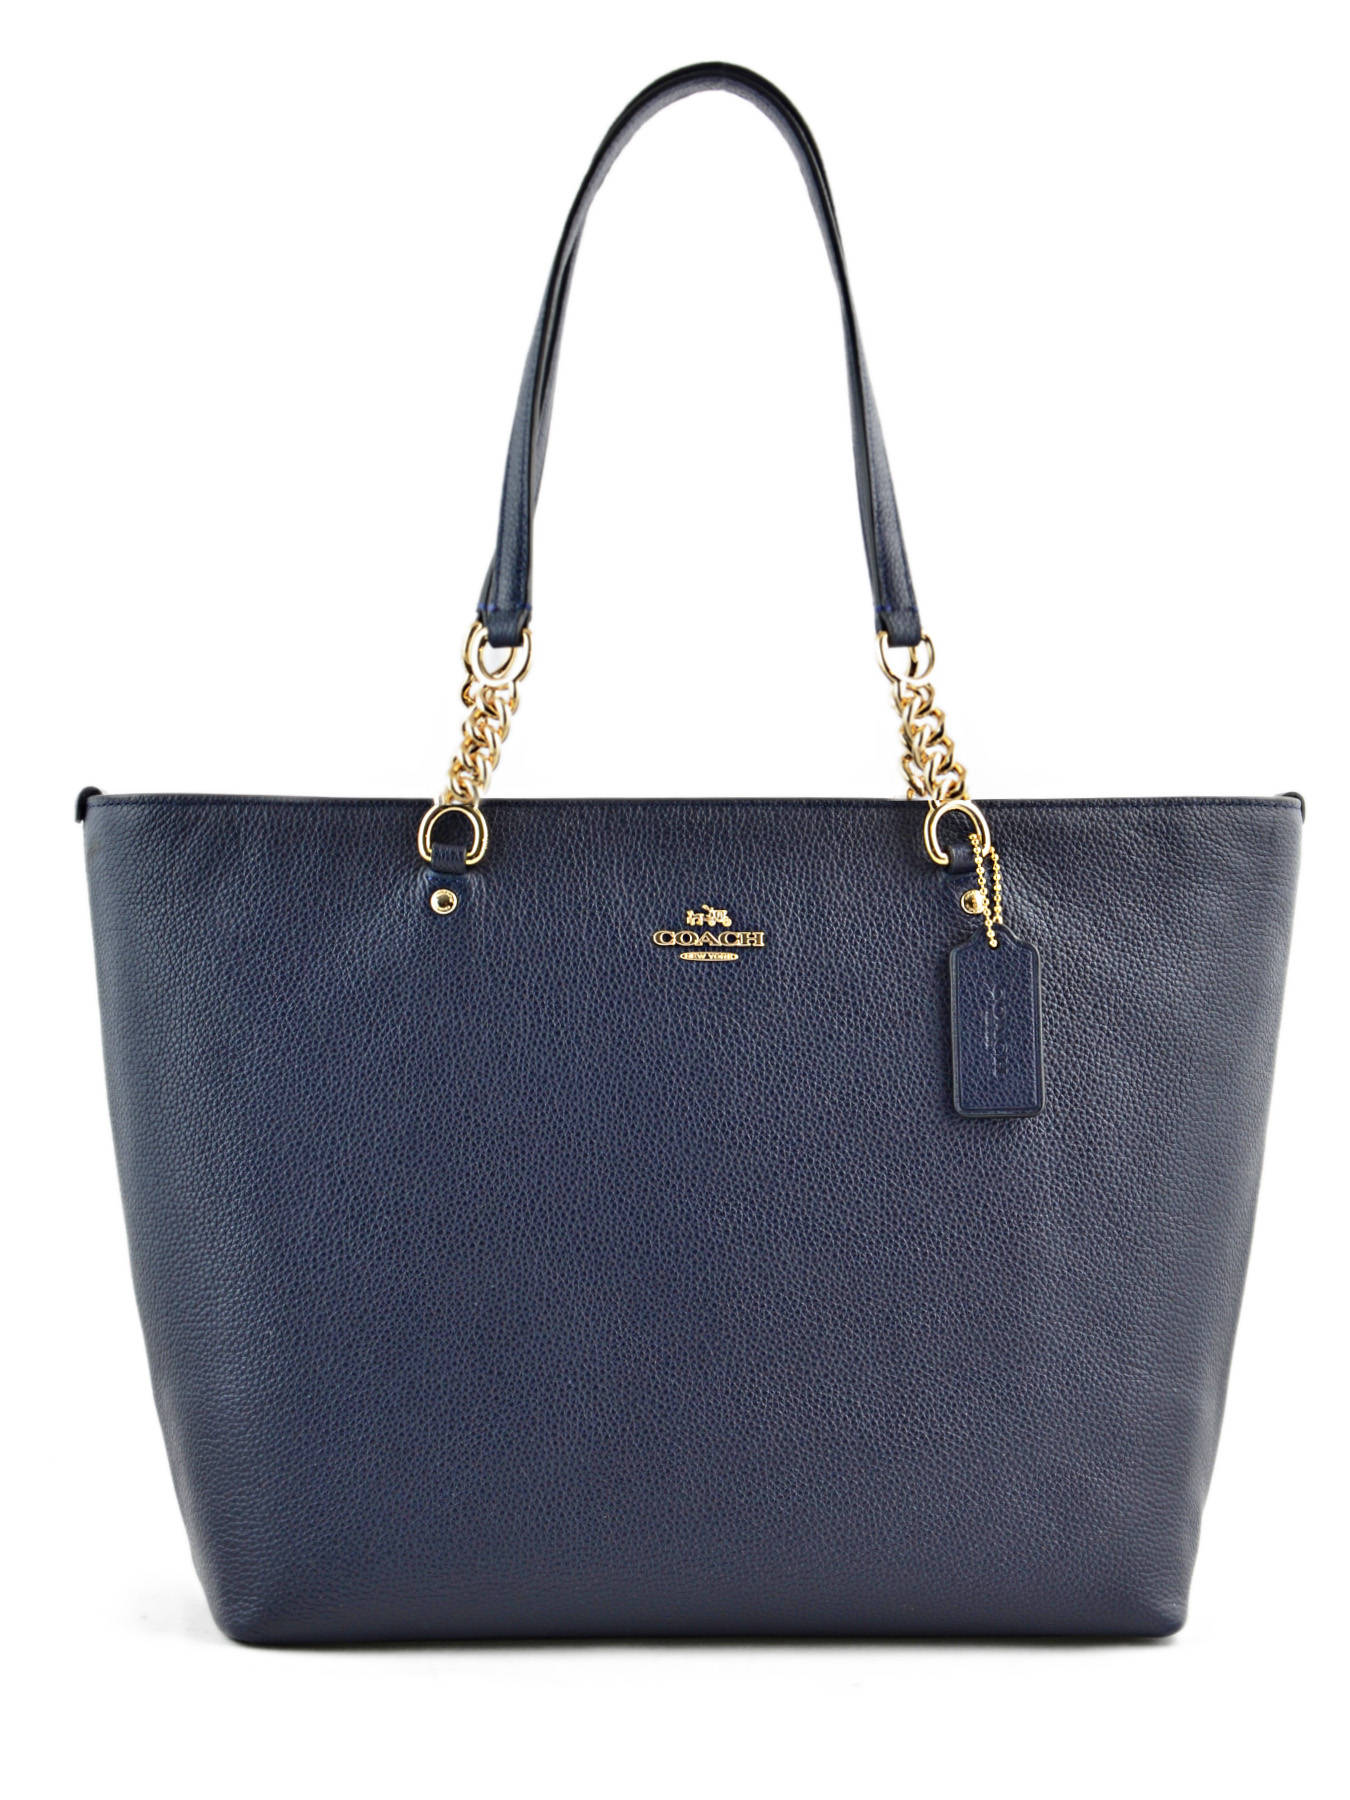 Ping Bag Casual Leather Coach Blue 36600